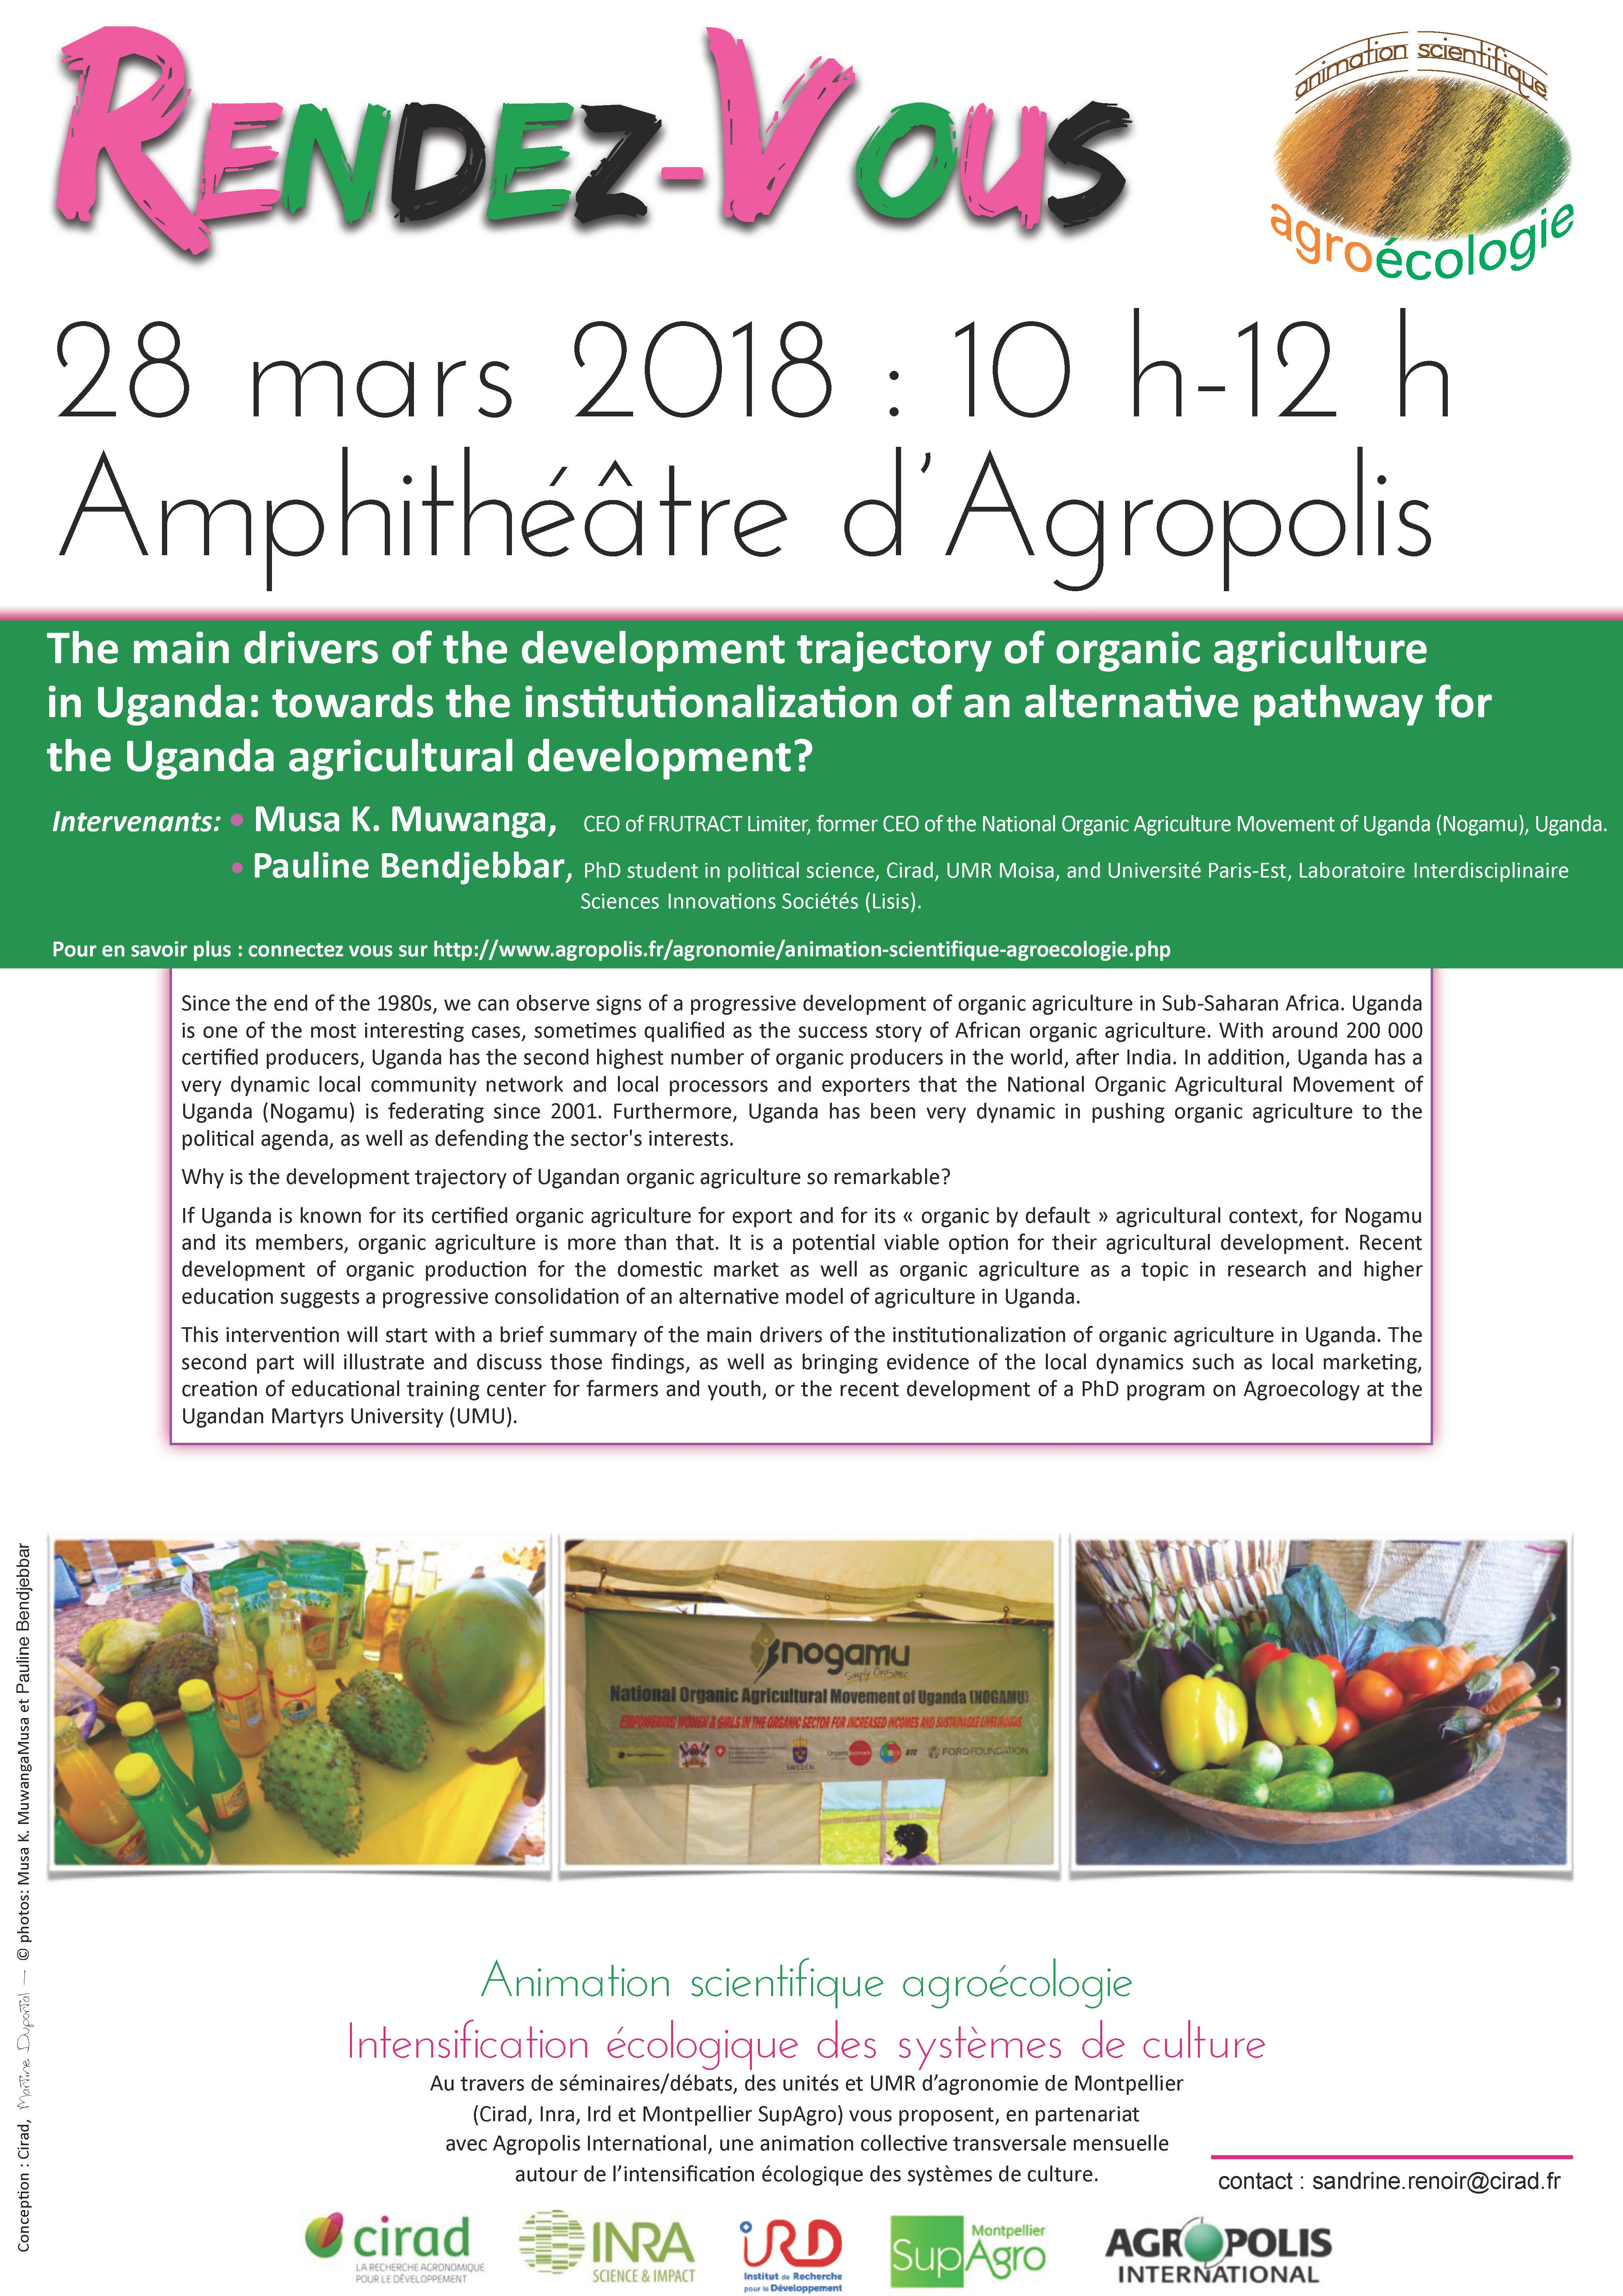 Save the date: Scientific animation on Agroecology - Ecological intensification of cropping systems: 'The main drivers of the development trajectory of organic agriculture in Uganda: towards the institutionalization of an alternative pathway for the Uganda agricultural development?' – March 28, 2018, 10am-12pm, Agropolis International, Montpellier